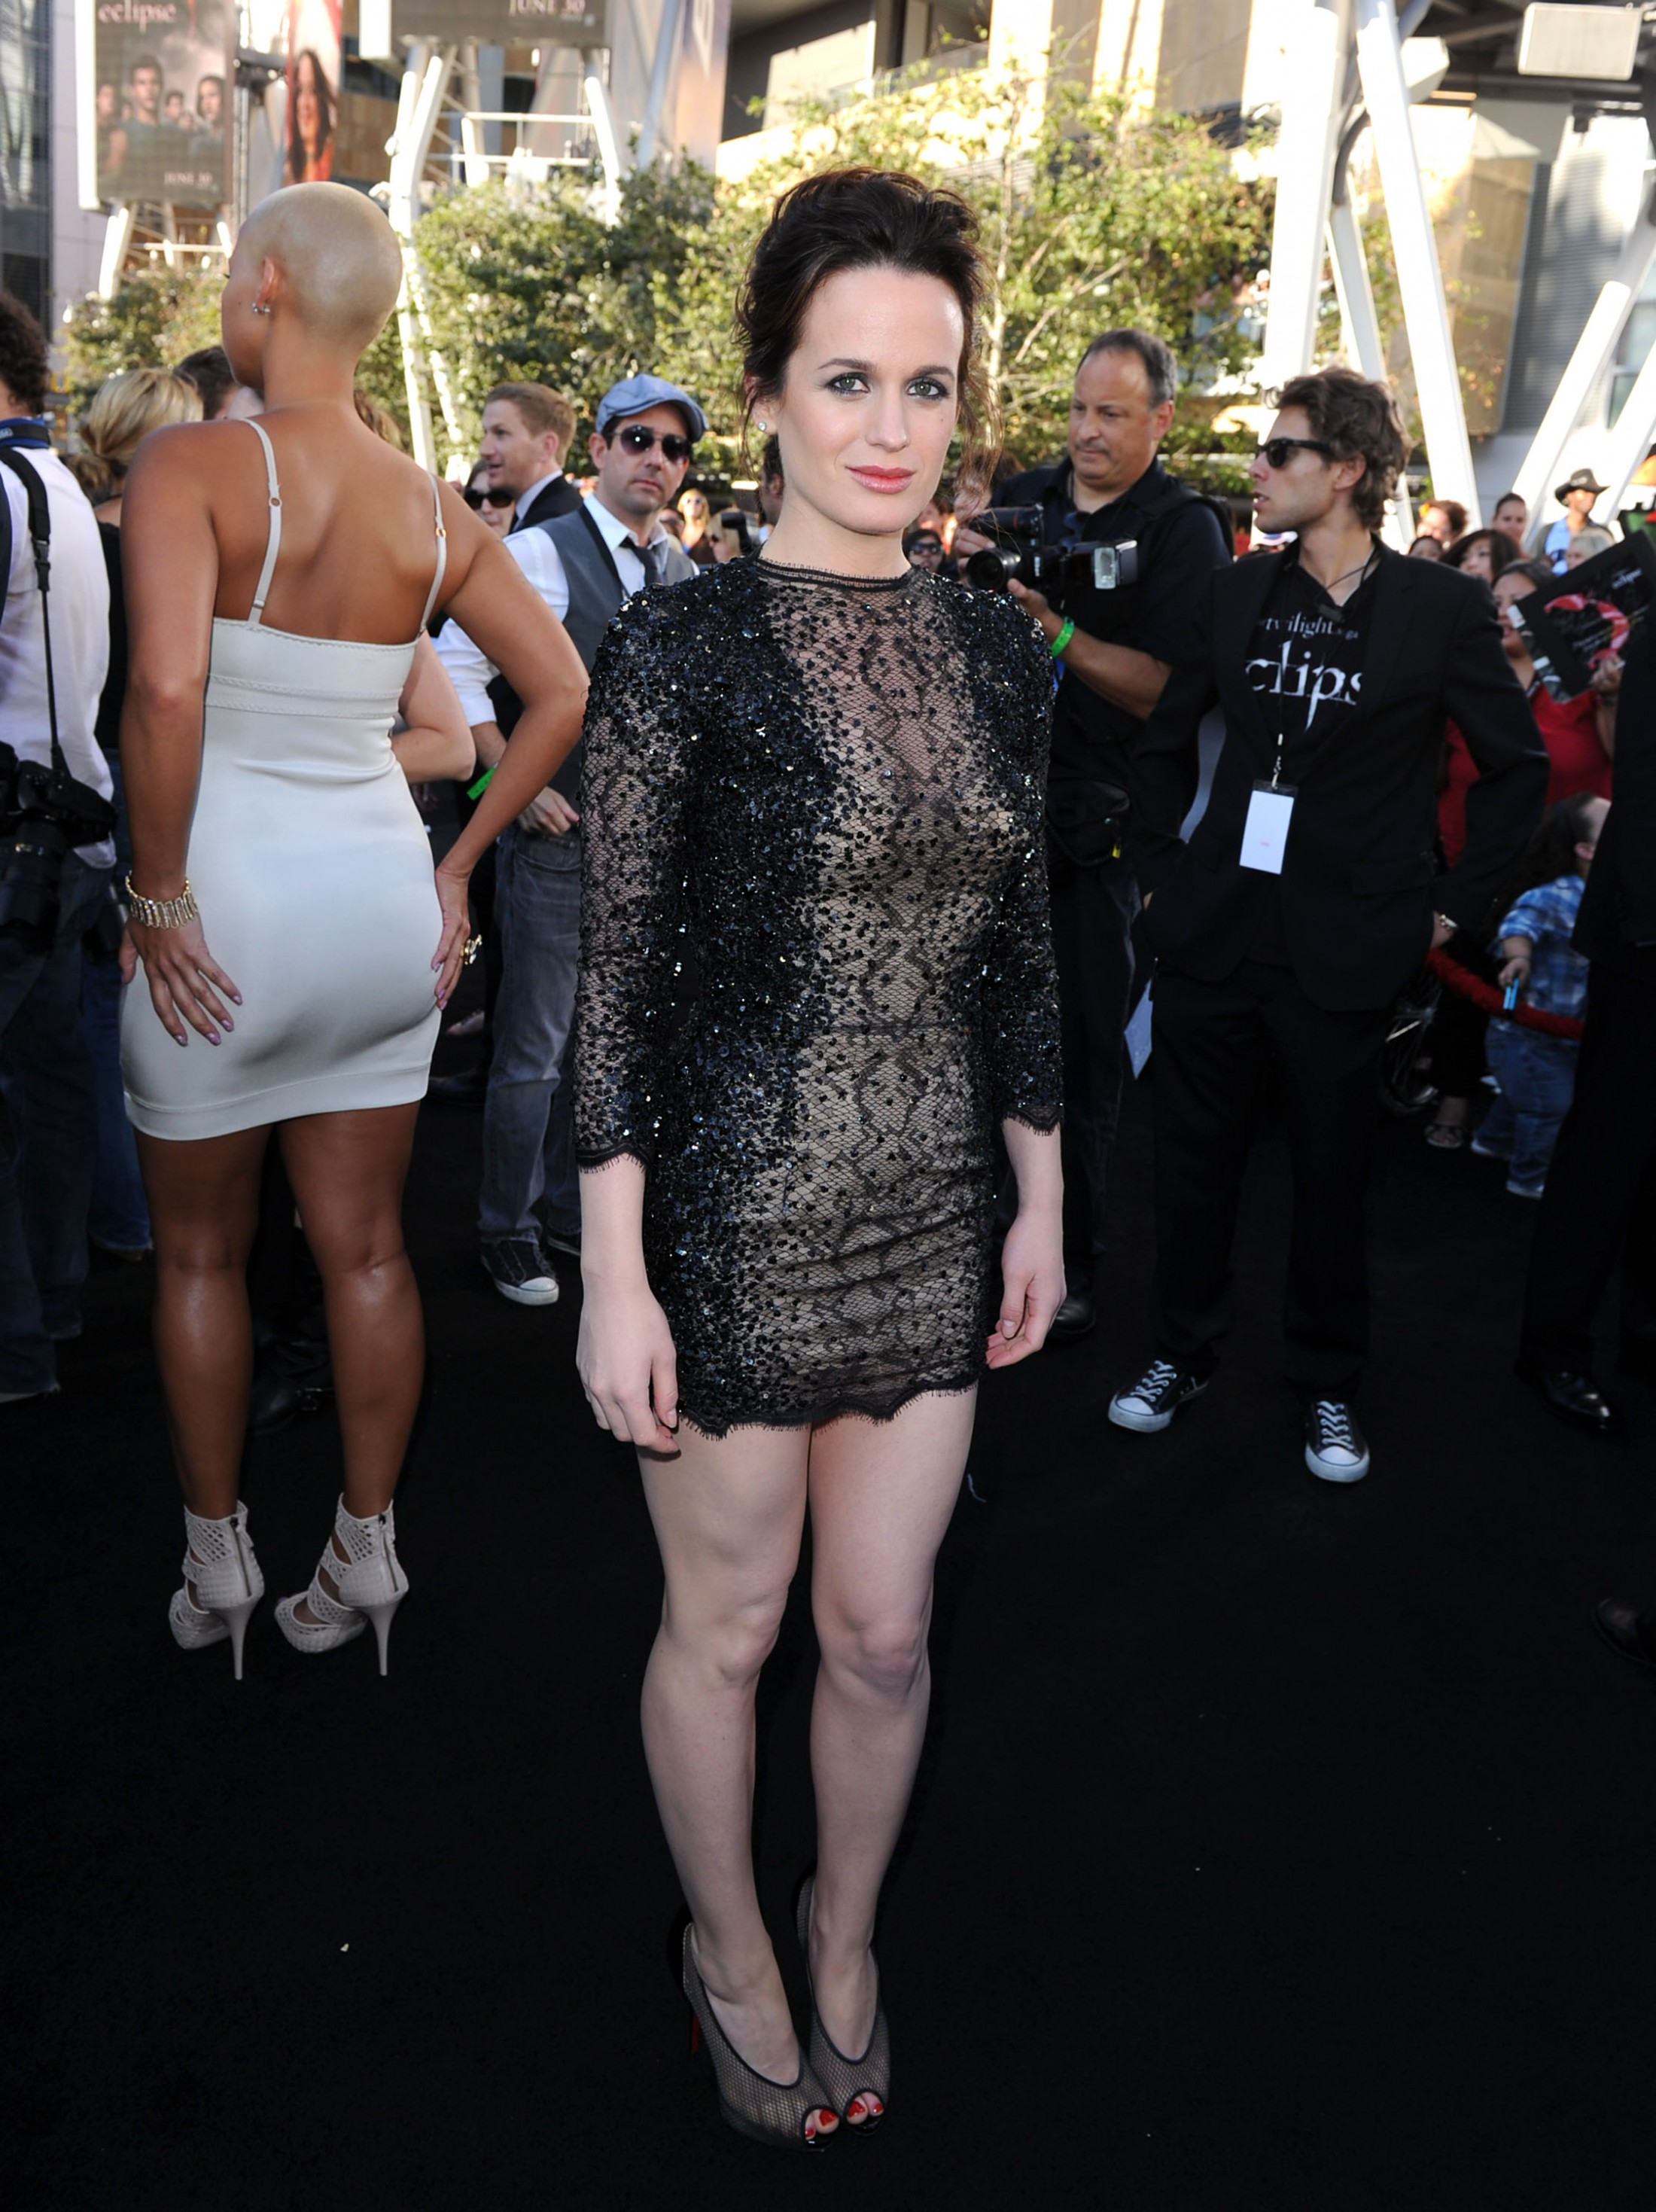 elizabeth-reaser-sexy-photos